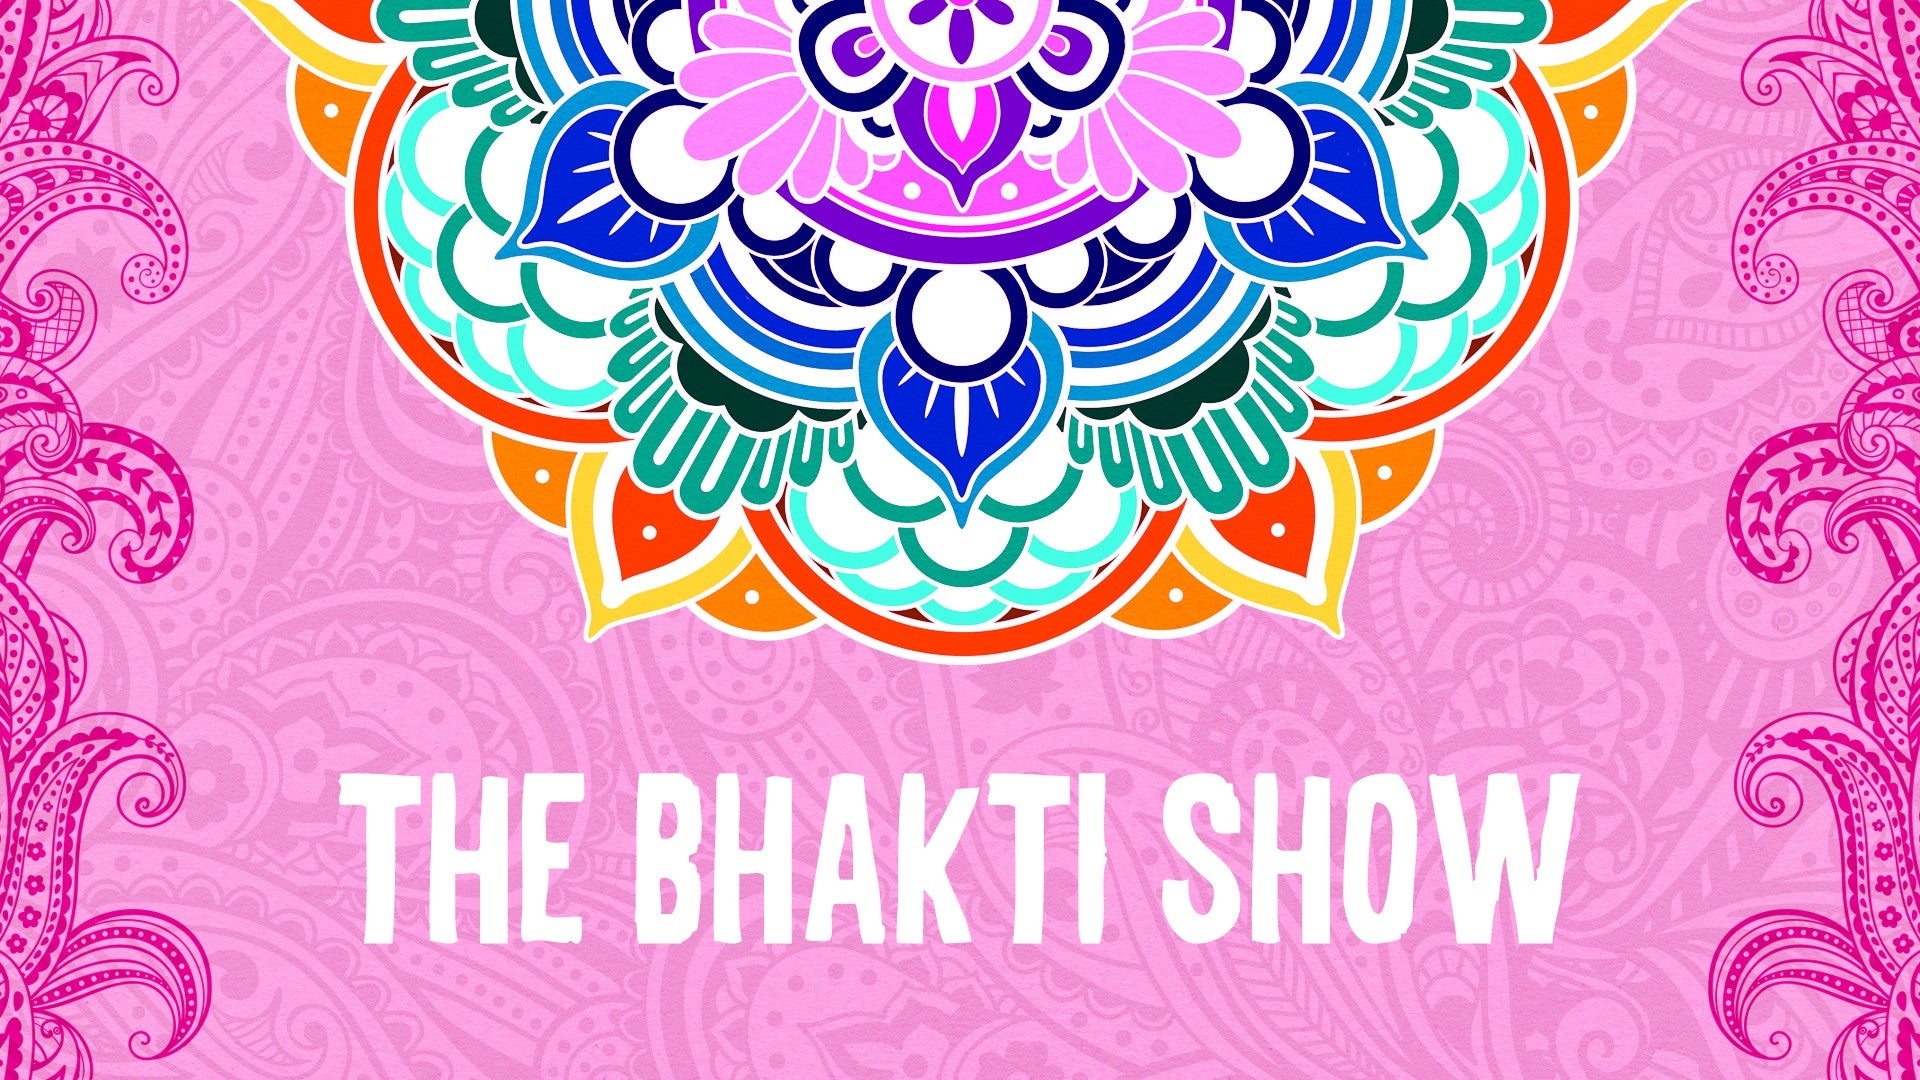 The Bhakti Show Artwork